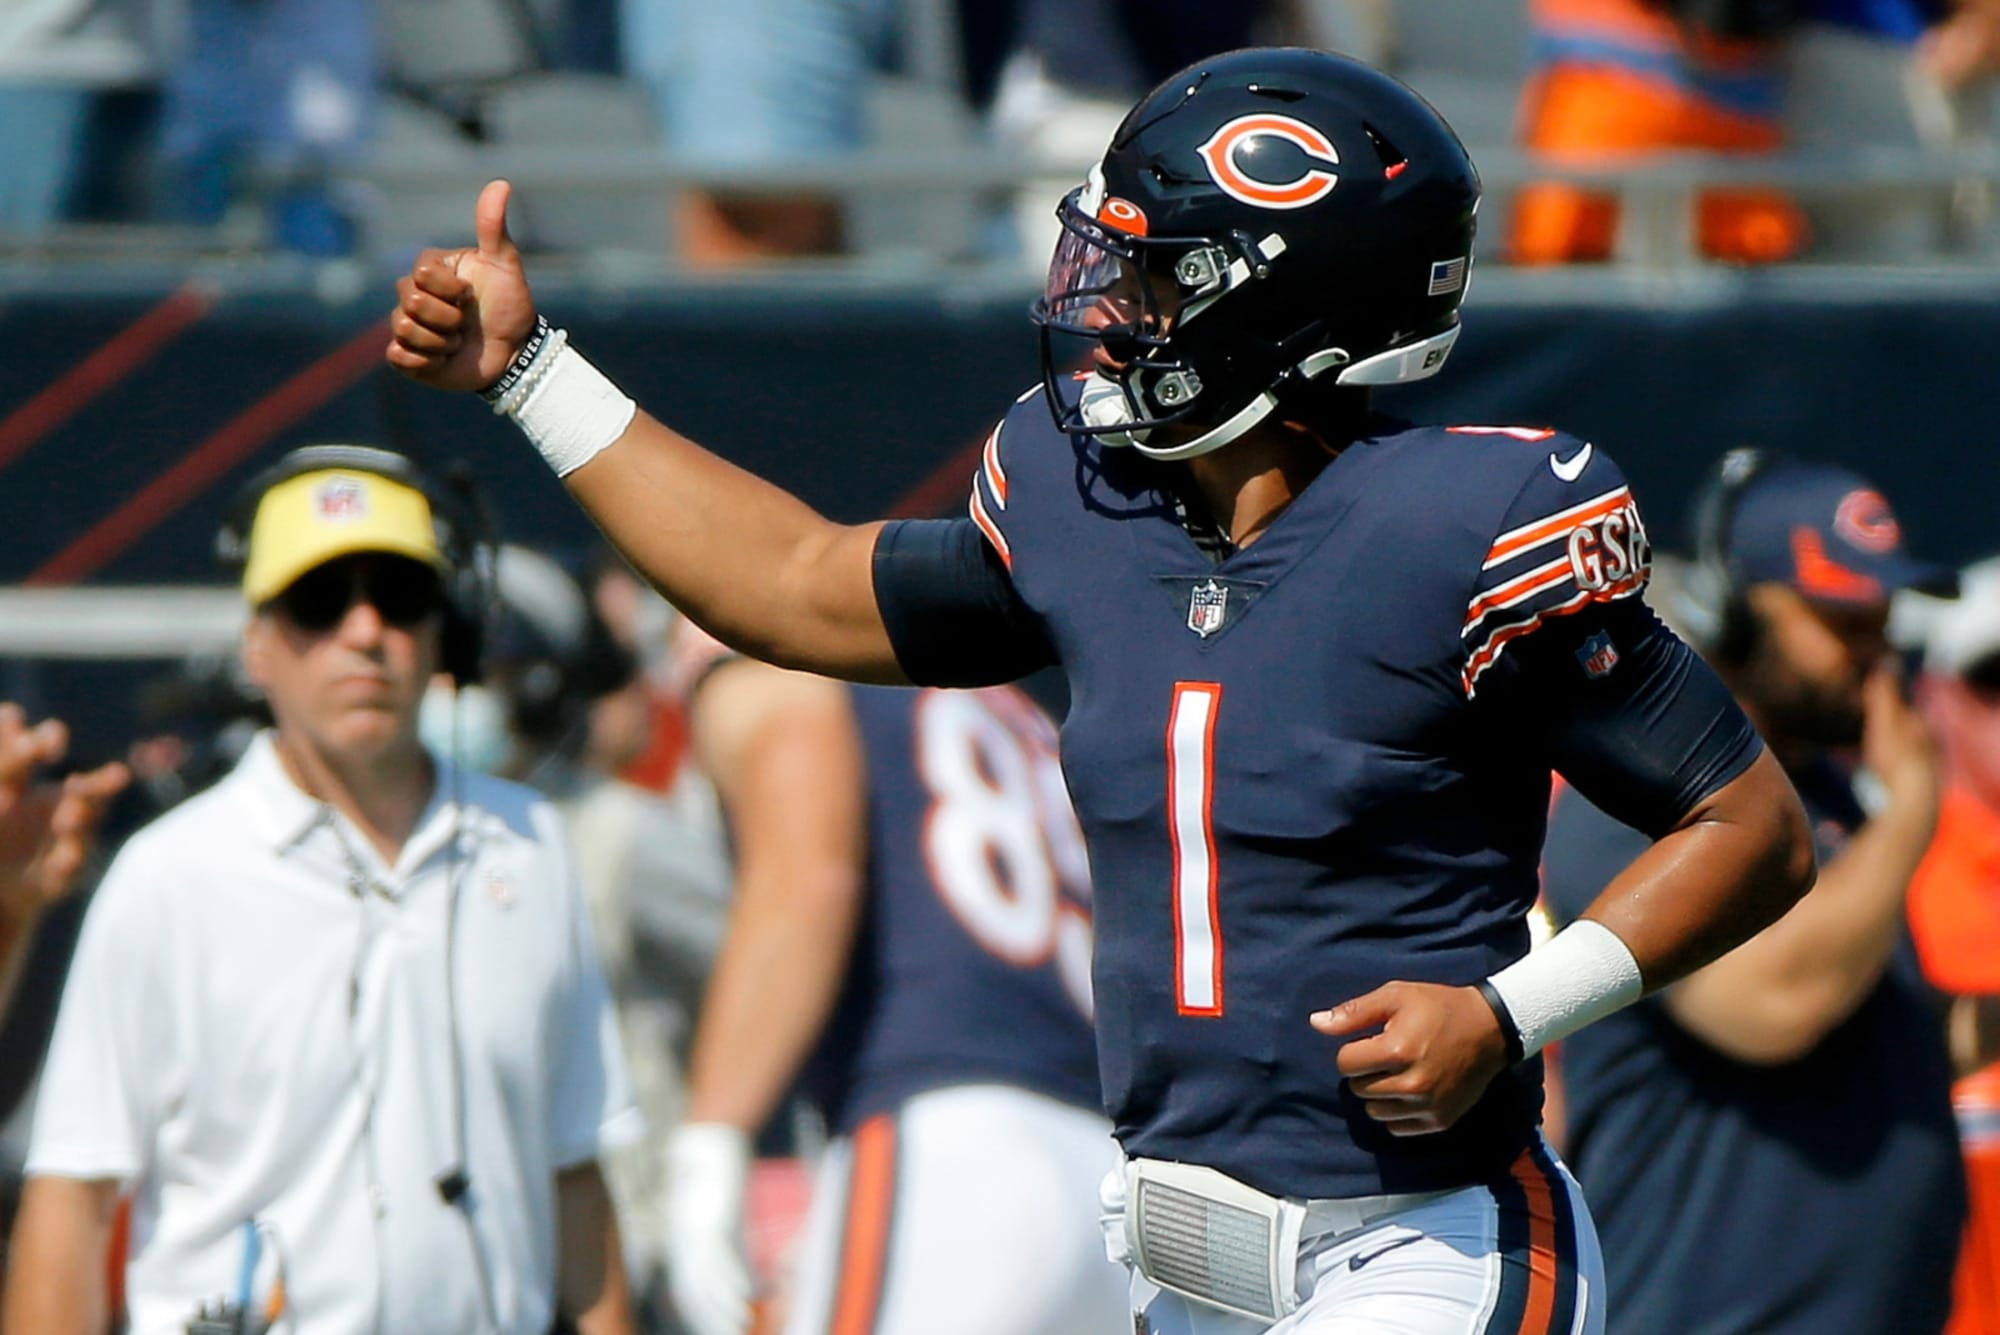 Bears Game Sunday: Bears vs Browns odds and prediction for NFL Week 3 game